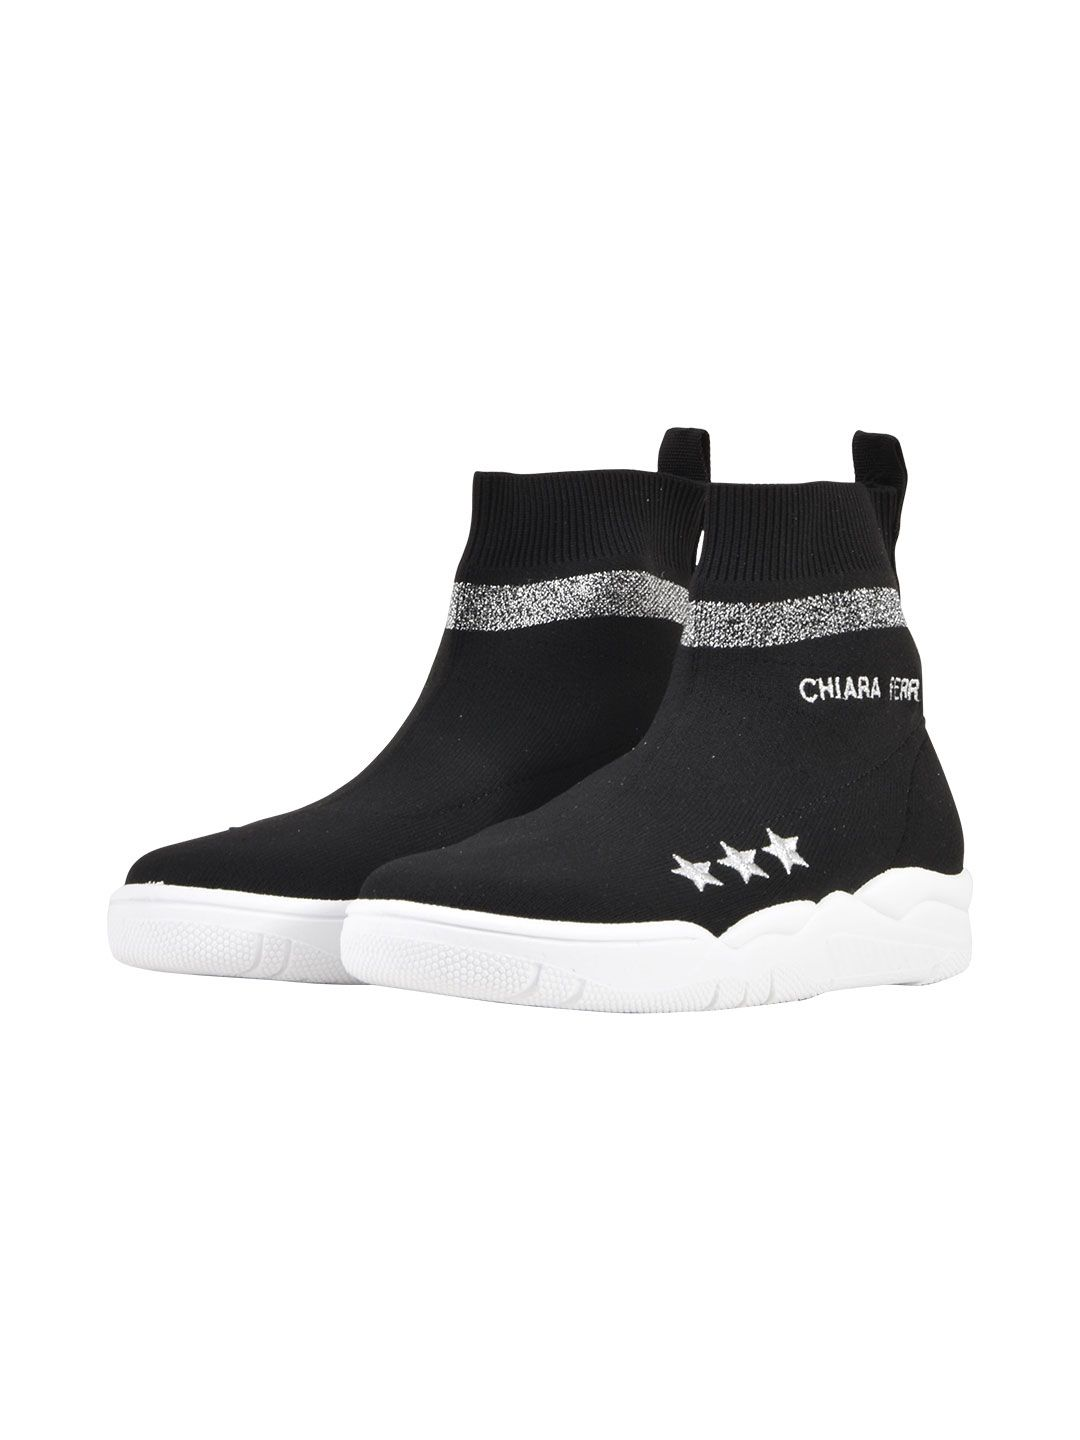 Chiara Ferragni Sock Flirting Sneakers Discount Countdown Package Outlet Fake Outlet Classic Outlet With Paypal Order Buy Cheap Latest Collections Ob8OjU